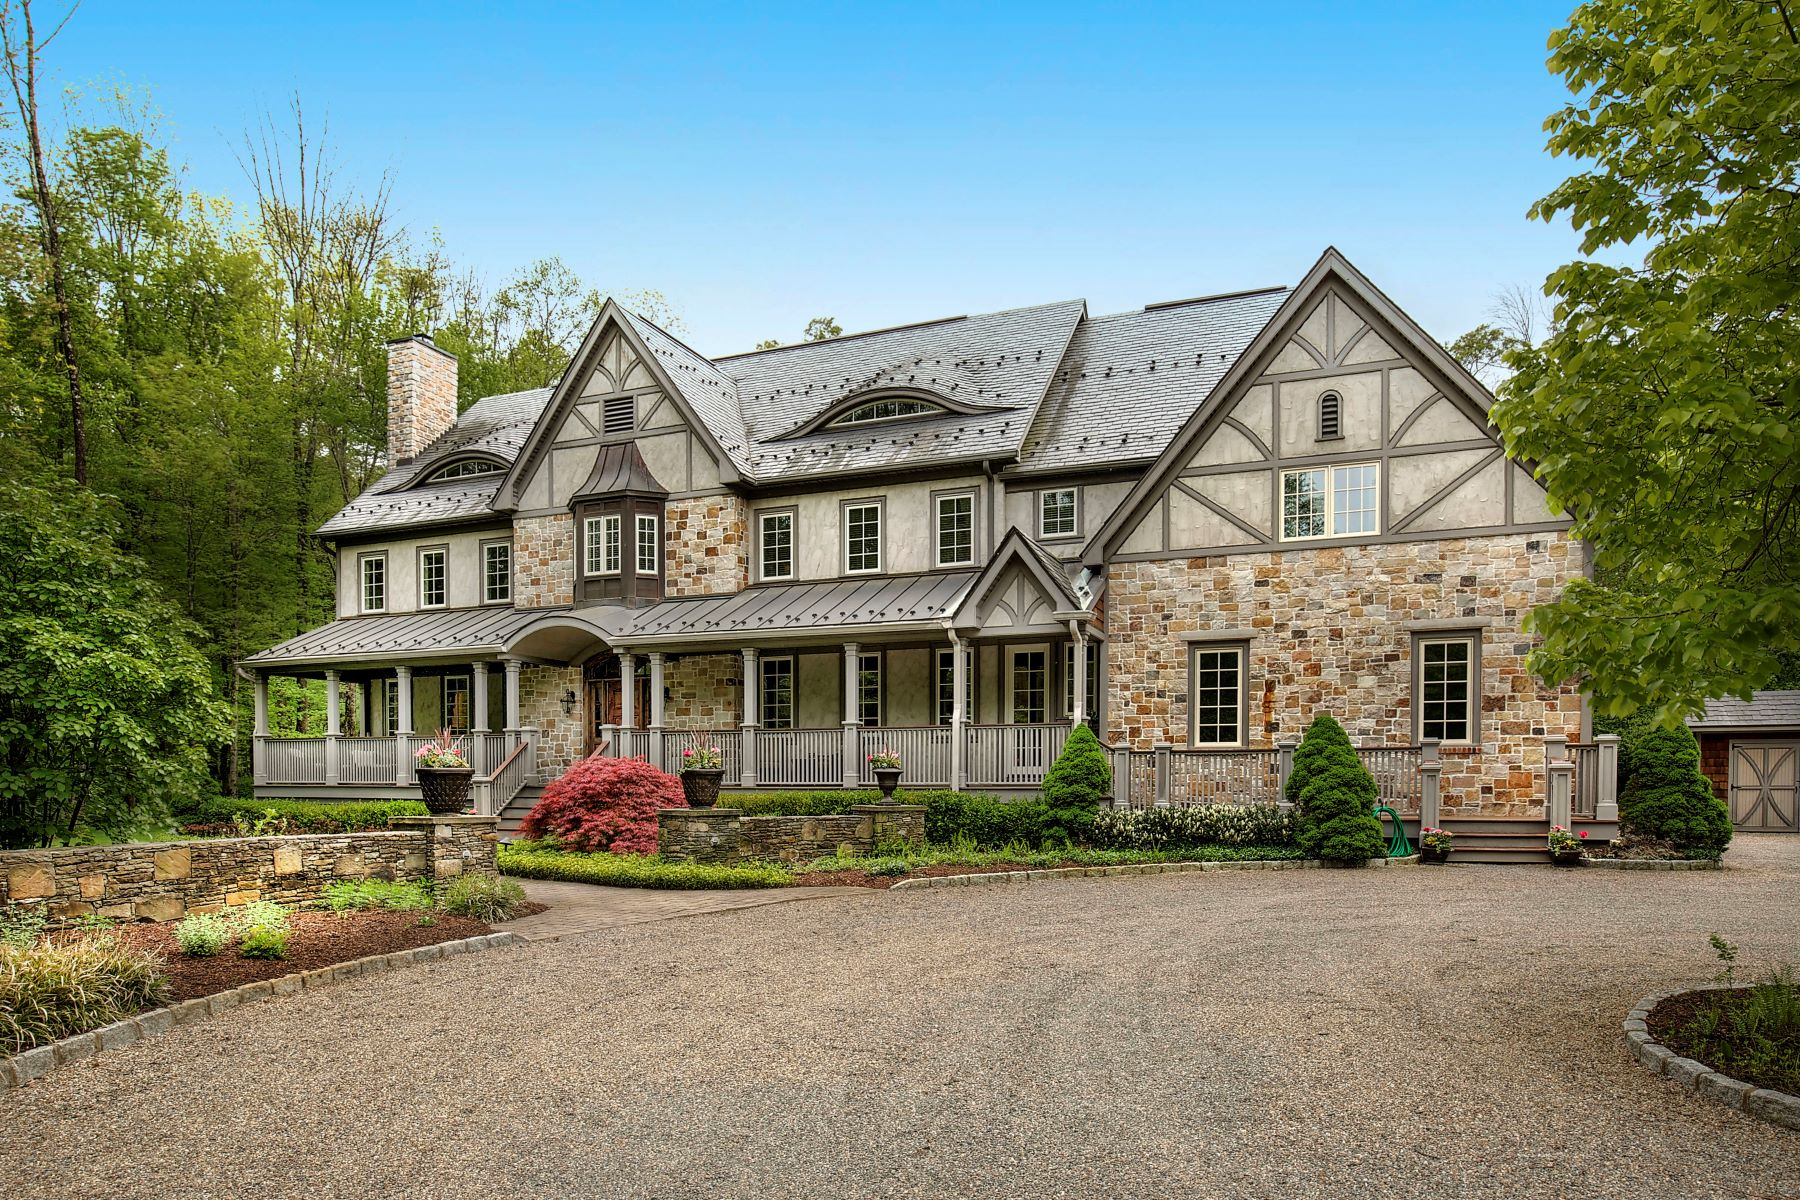 Maison unifamiliale pour l Vente à Gracious Custom Colonial 45 Hardscrabble Road Basking Ridge, New Jersey 07920 États-Unis